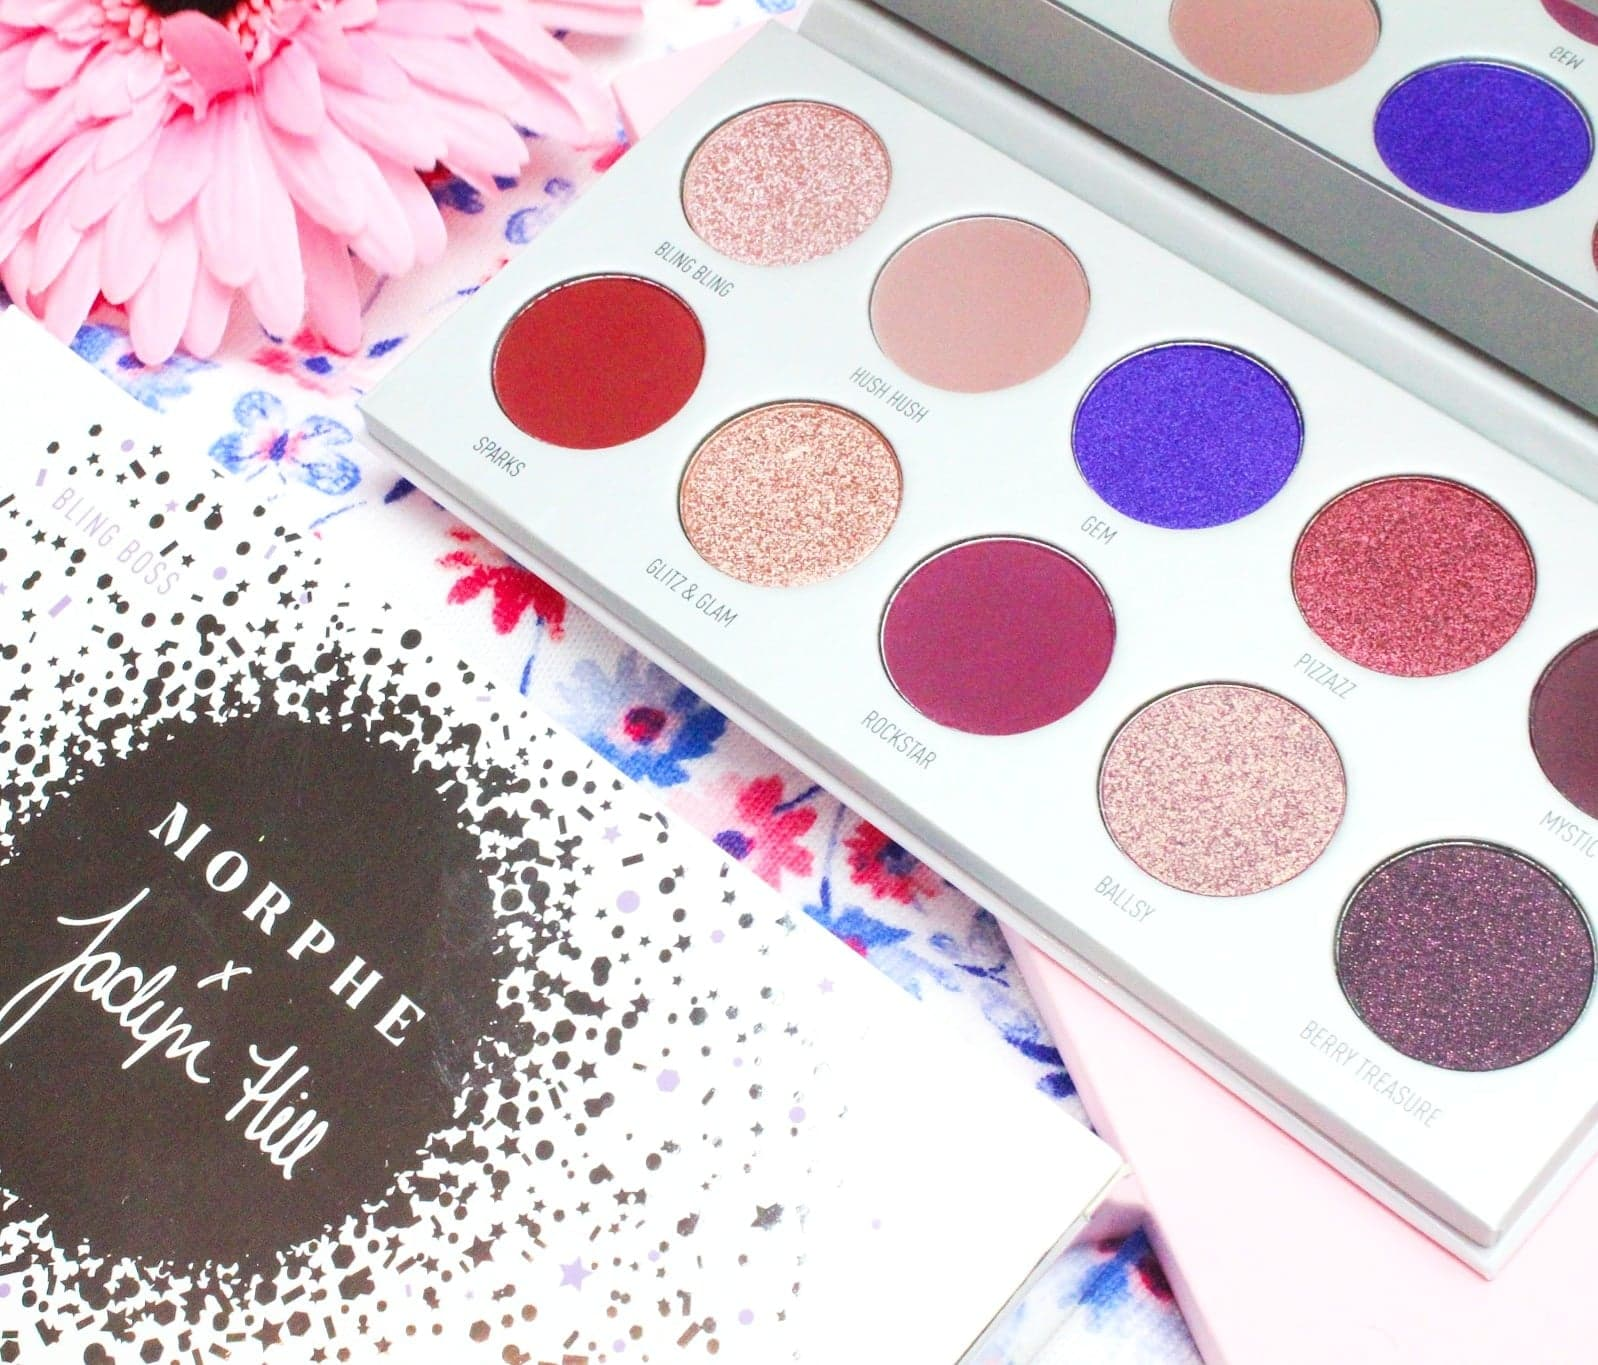 Morphe X Jaclyn Hill: The Vault | Bling Boss Eyeshadow Palette